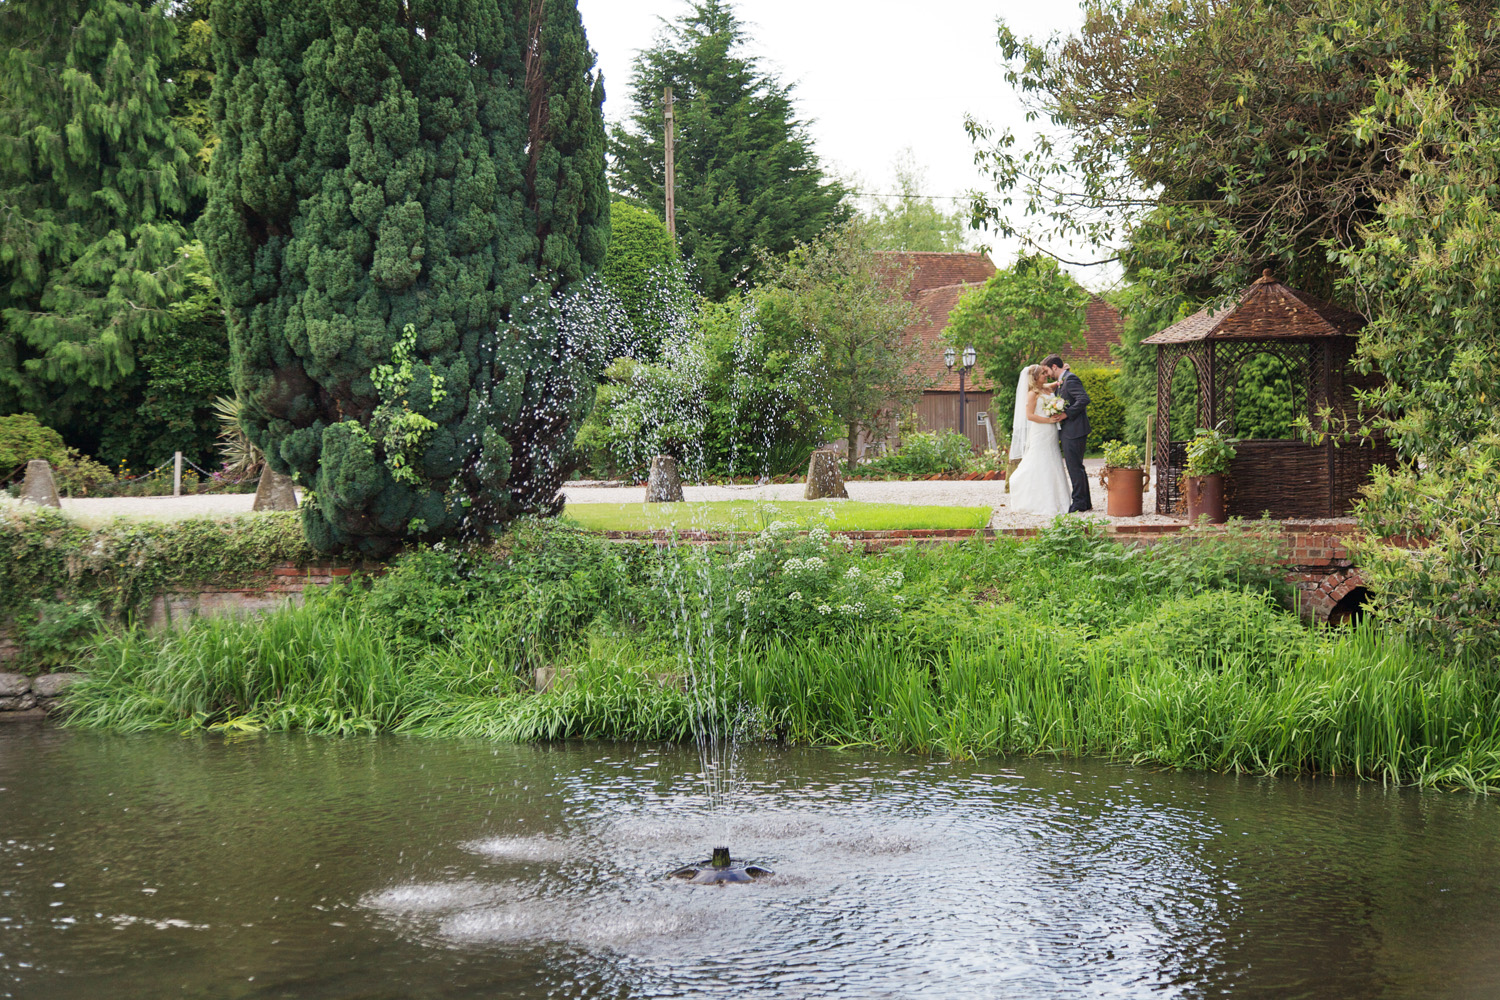 The_Old_Mill_Wedding_Photographer_Aldermaston_022.jpg